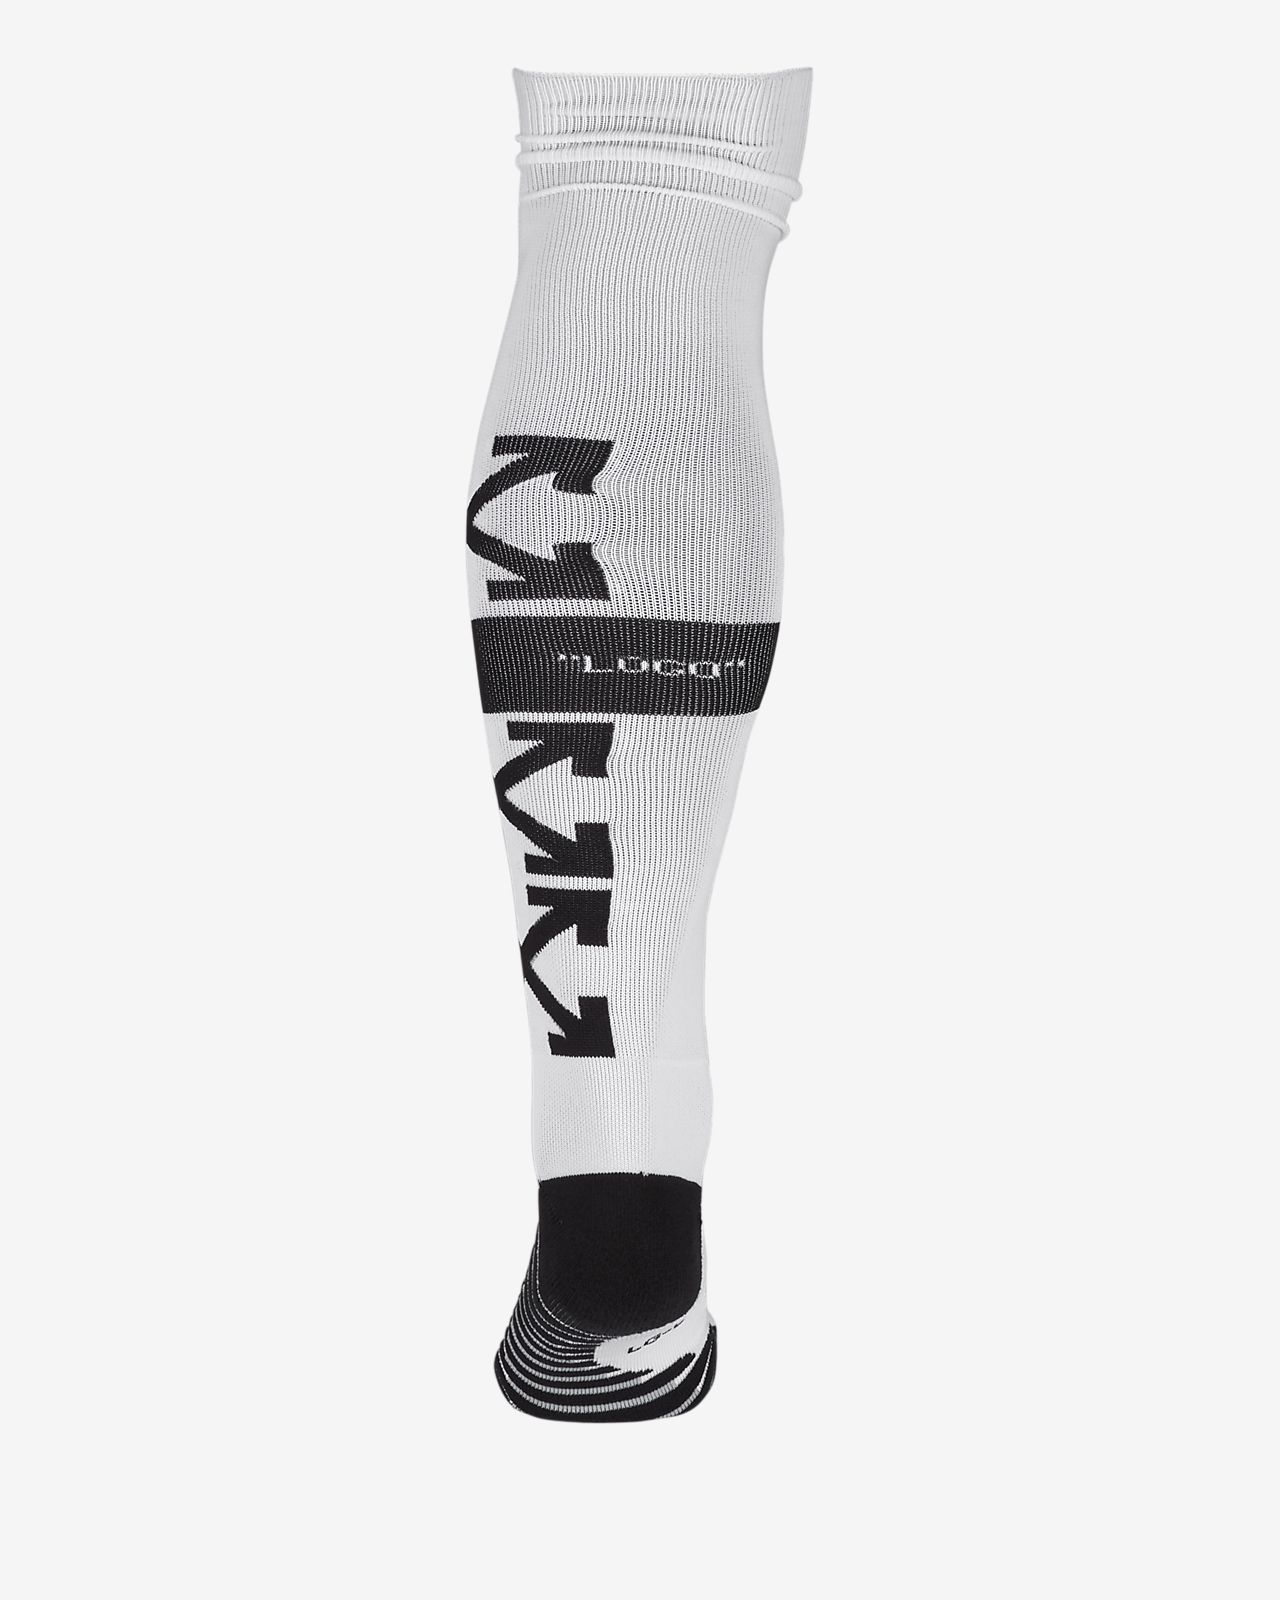 281daf0207ee1 Nike x Off-White Football Socks. Nike.com CA